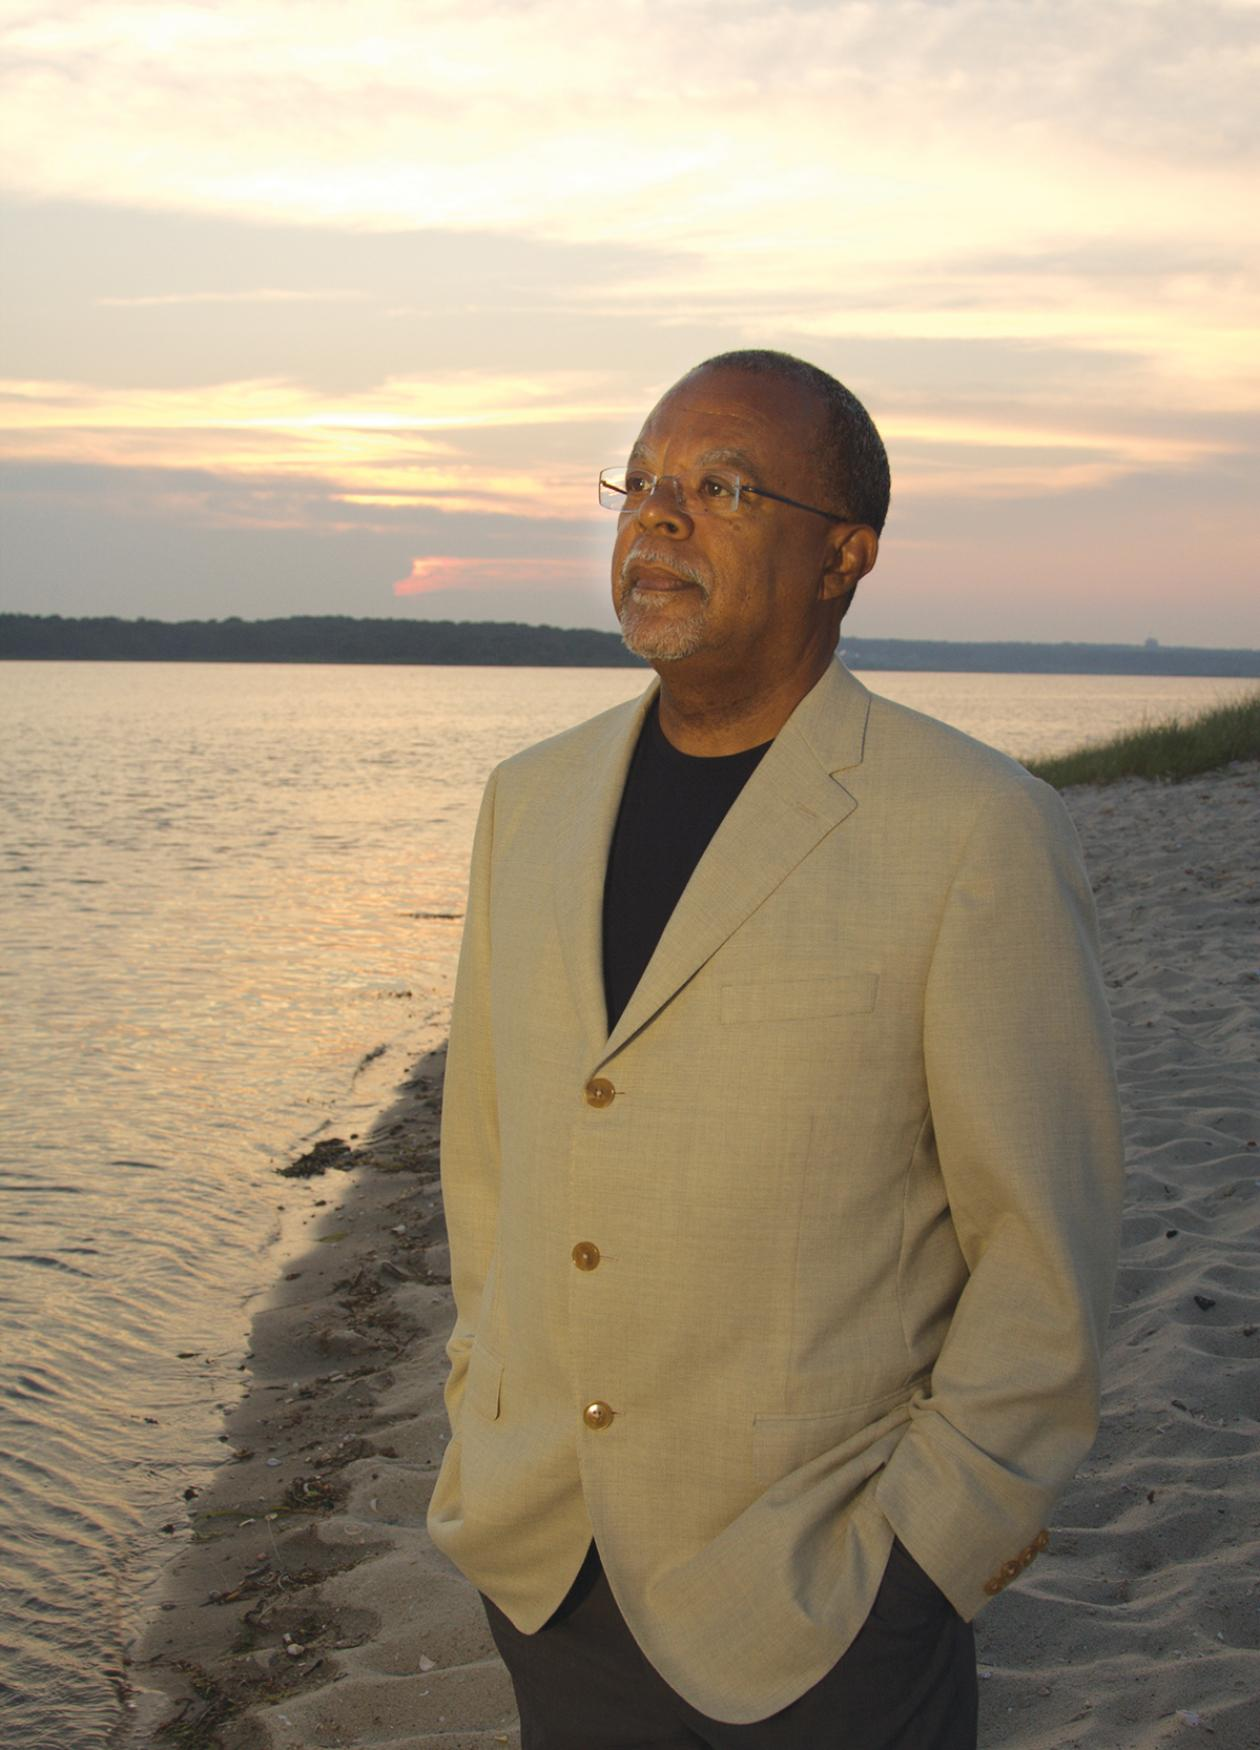 Photograph of Henry Louis Gates Jr. on a beach